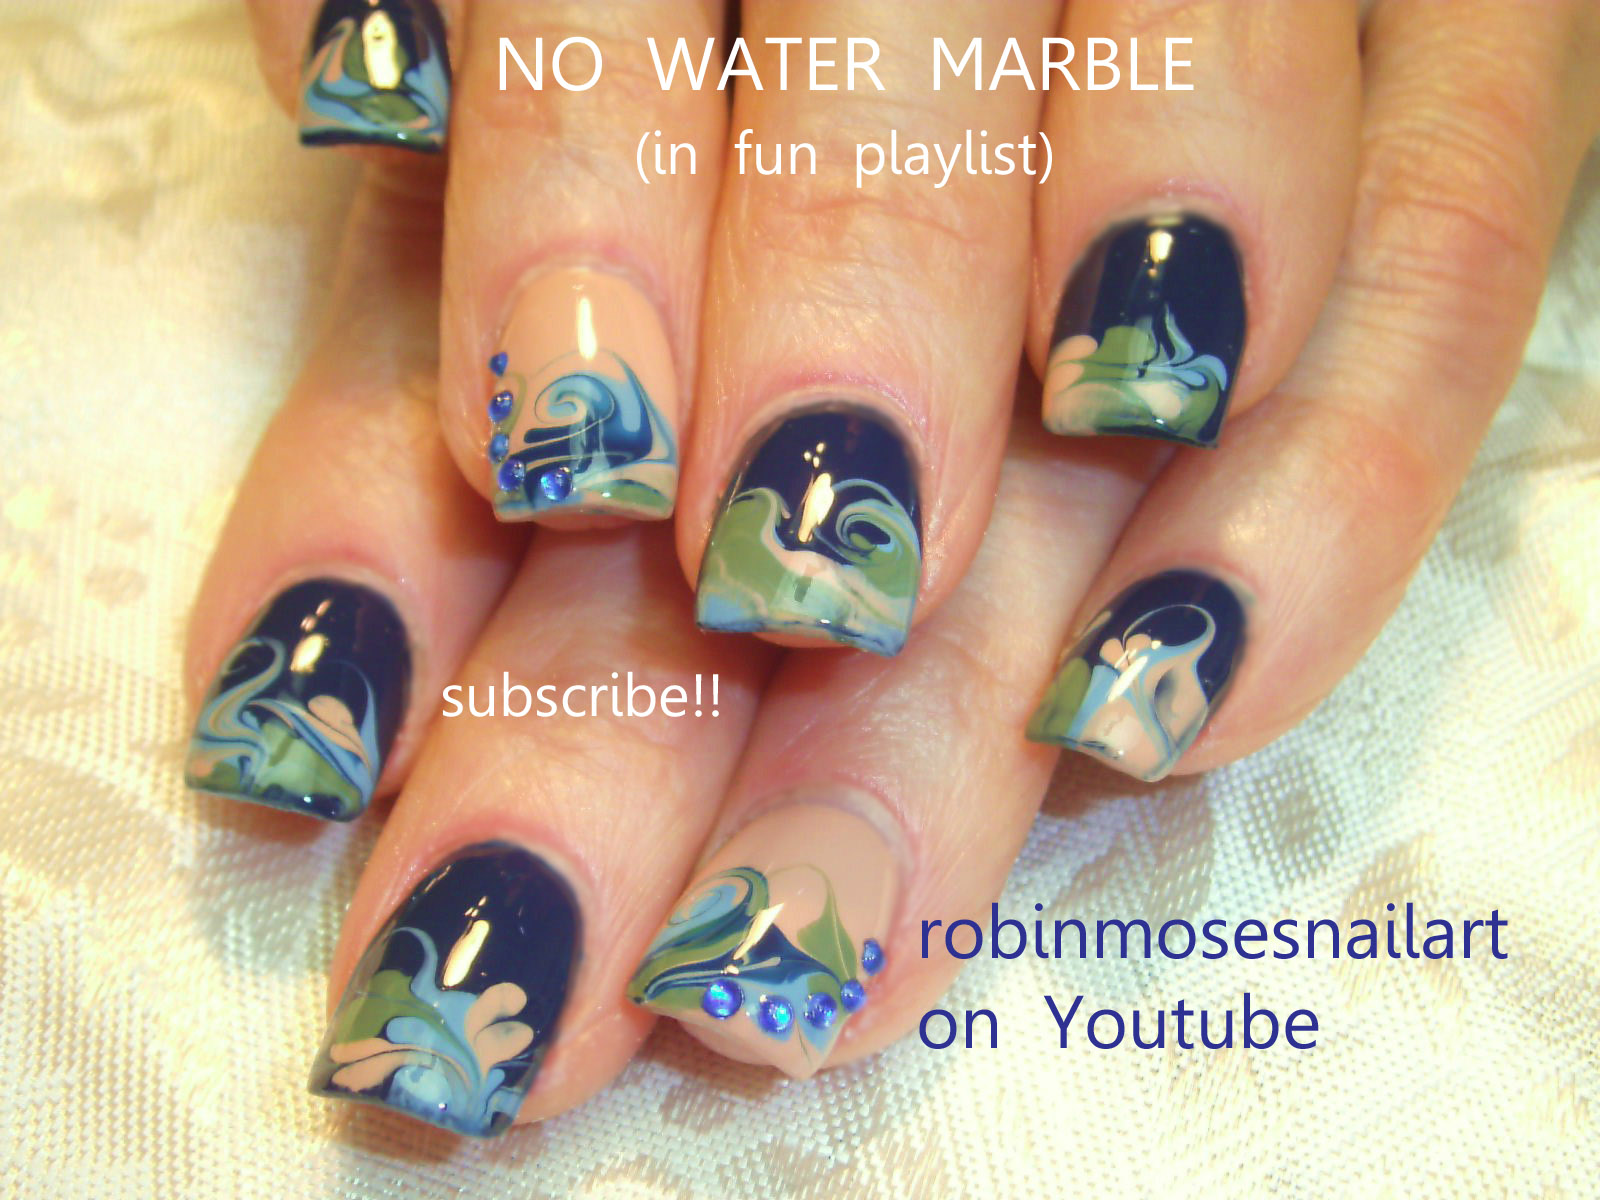 How To Do Nail Polish In Water Swirl Creative Touch